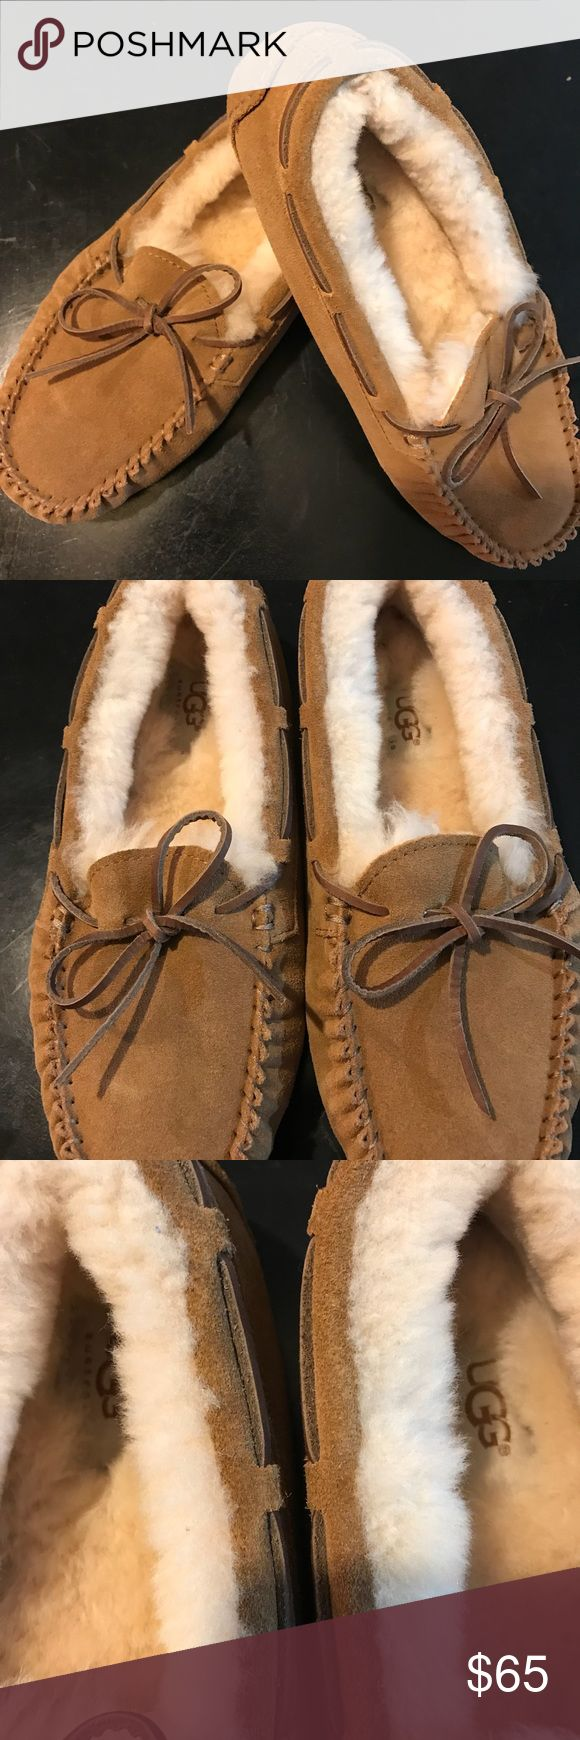 UGGS Moccasins women Uggs Dakota women's sheepskin slippers size 5! Worn once indoors. Excellent condition 🔥🔥🔥 uggs Shoes Moccasins